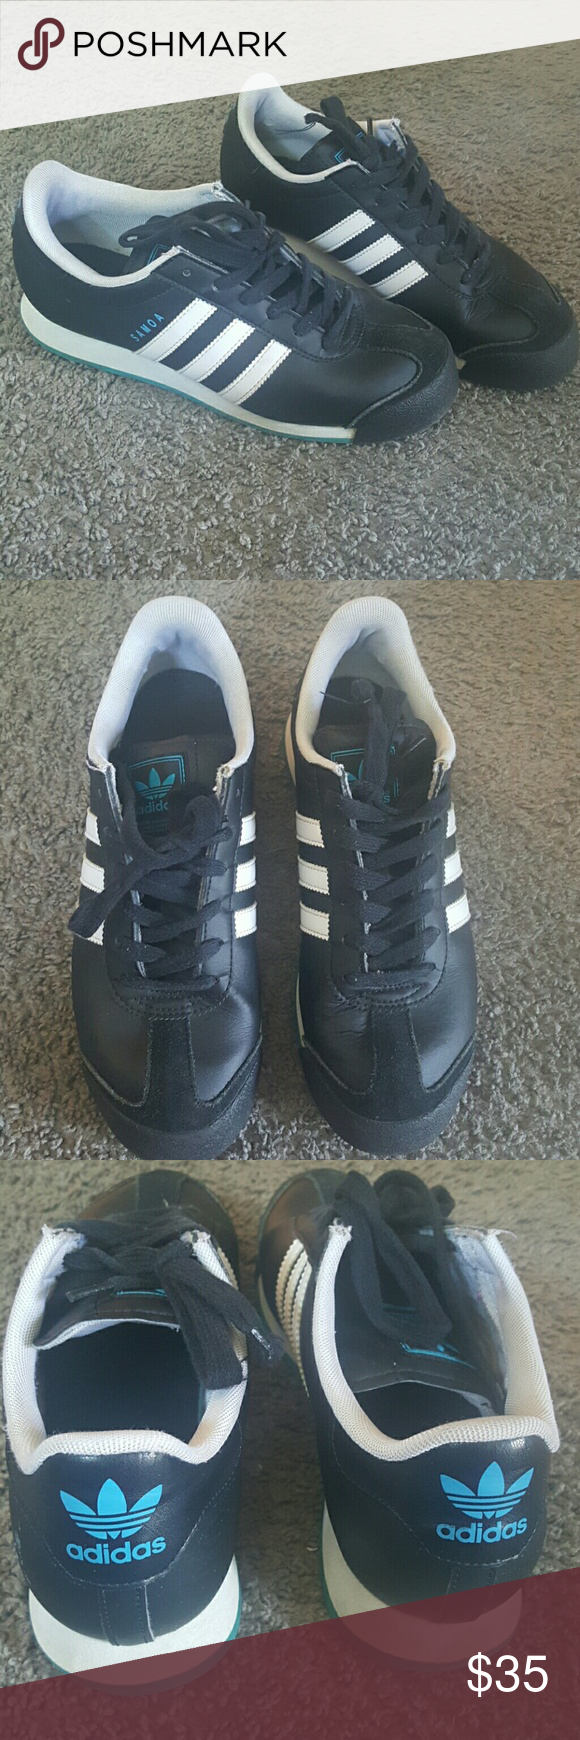 Adidas Samoa Size 5 Adidas Samoa Size 5. Black, white and blue. Good condition. Few scuff marks Adidas Shoes Sneakers